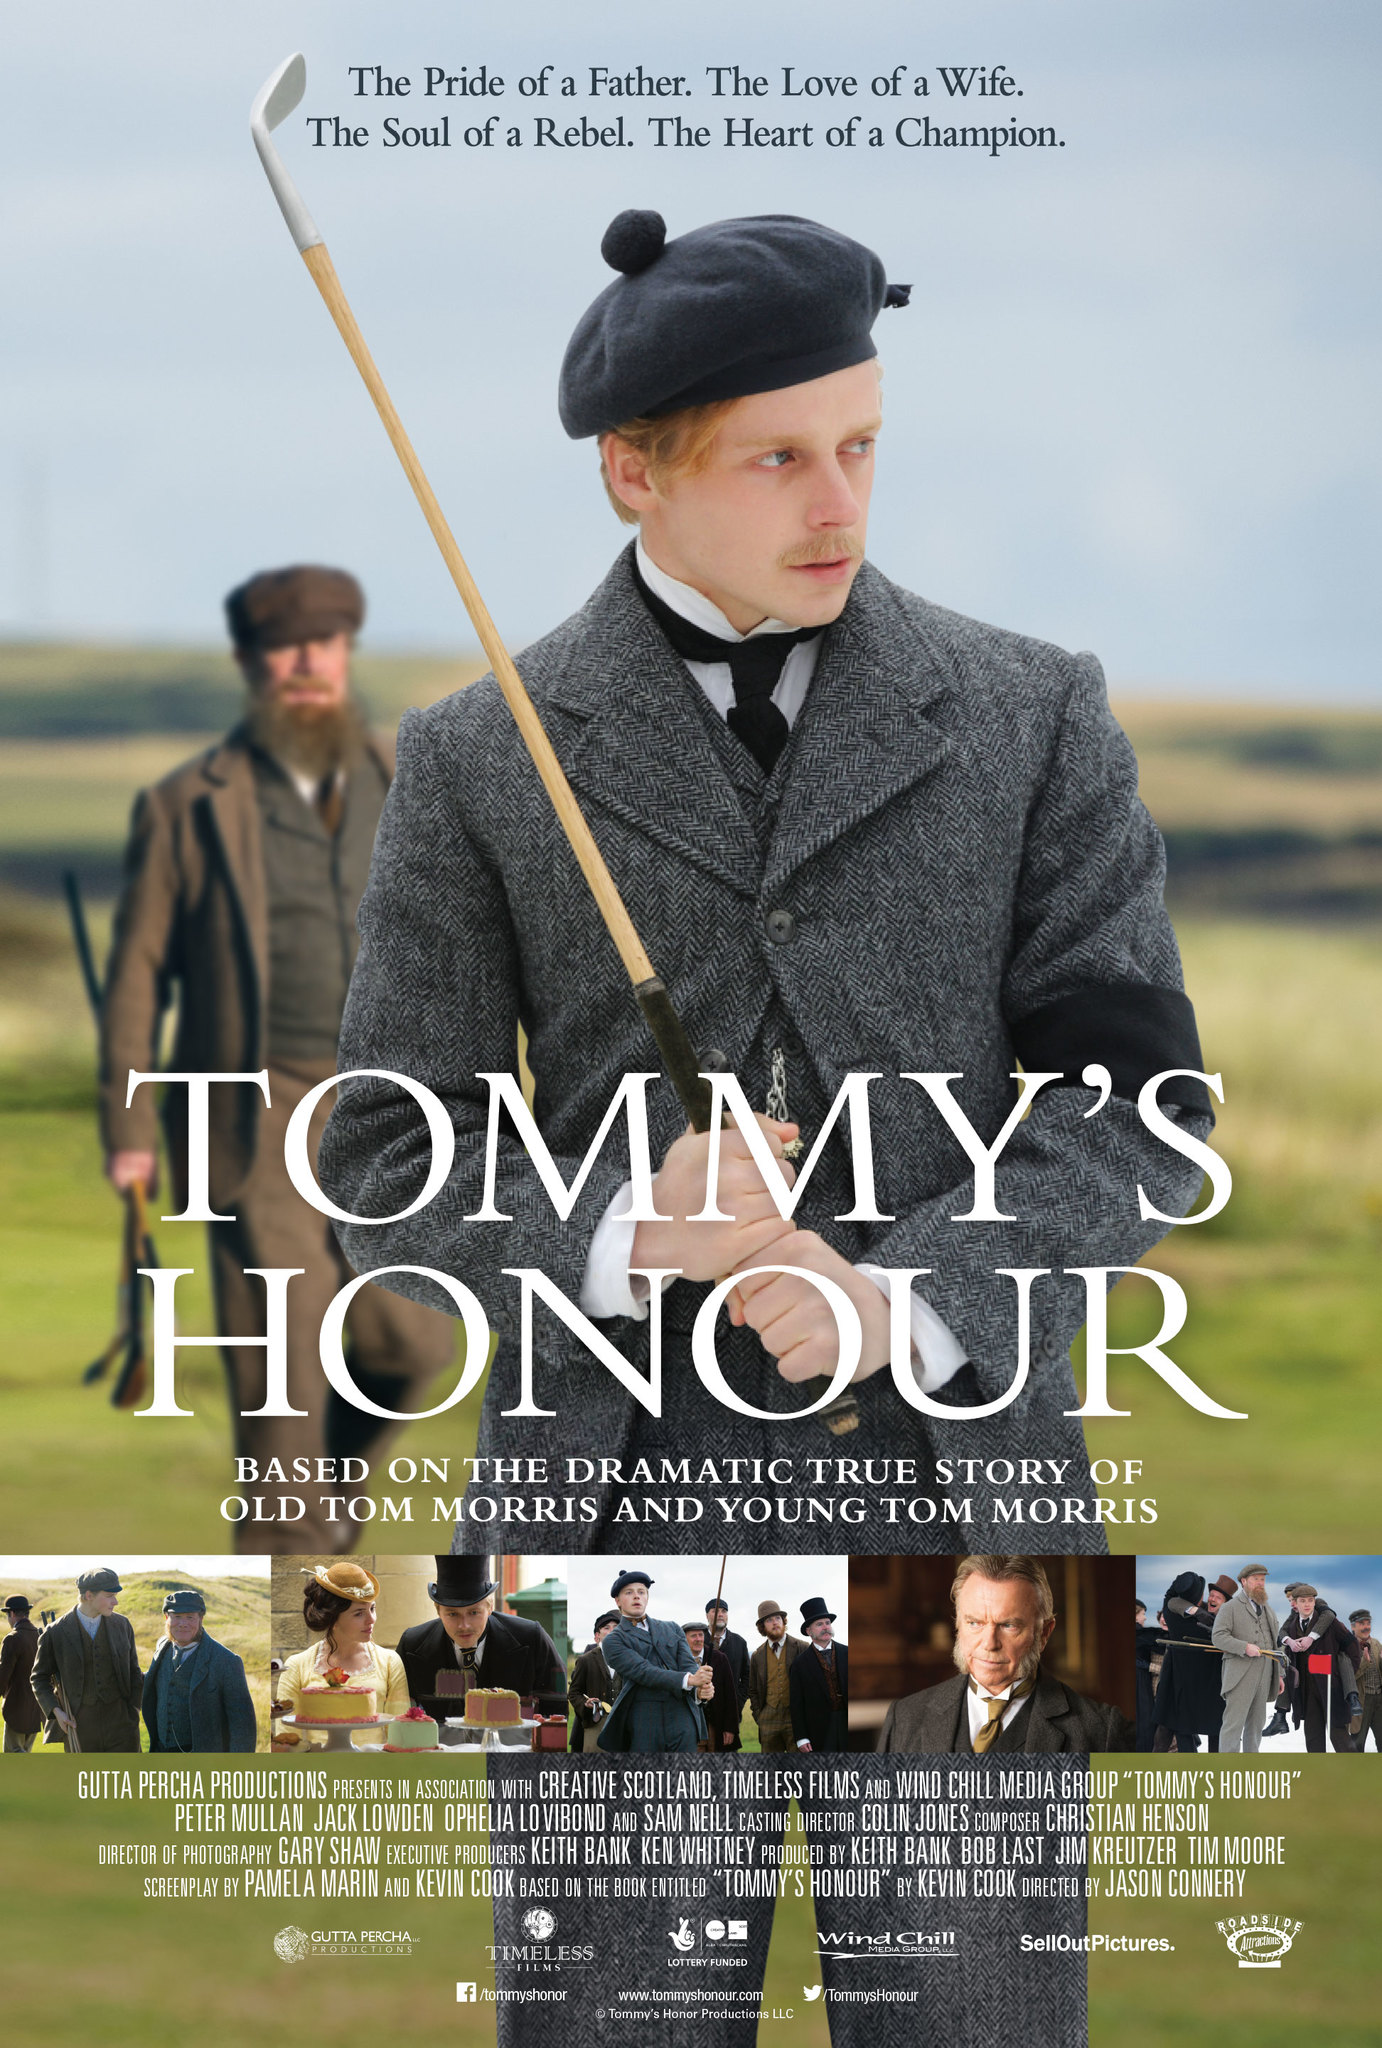 THE SOUL OF ST. ANDREWS: The Life of Old Tom Morris